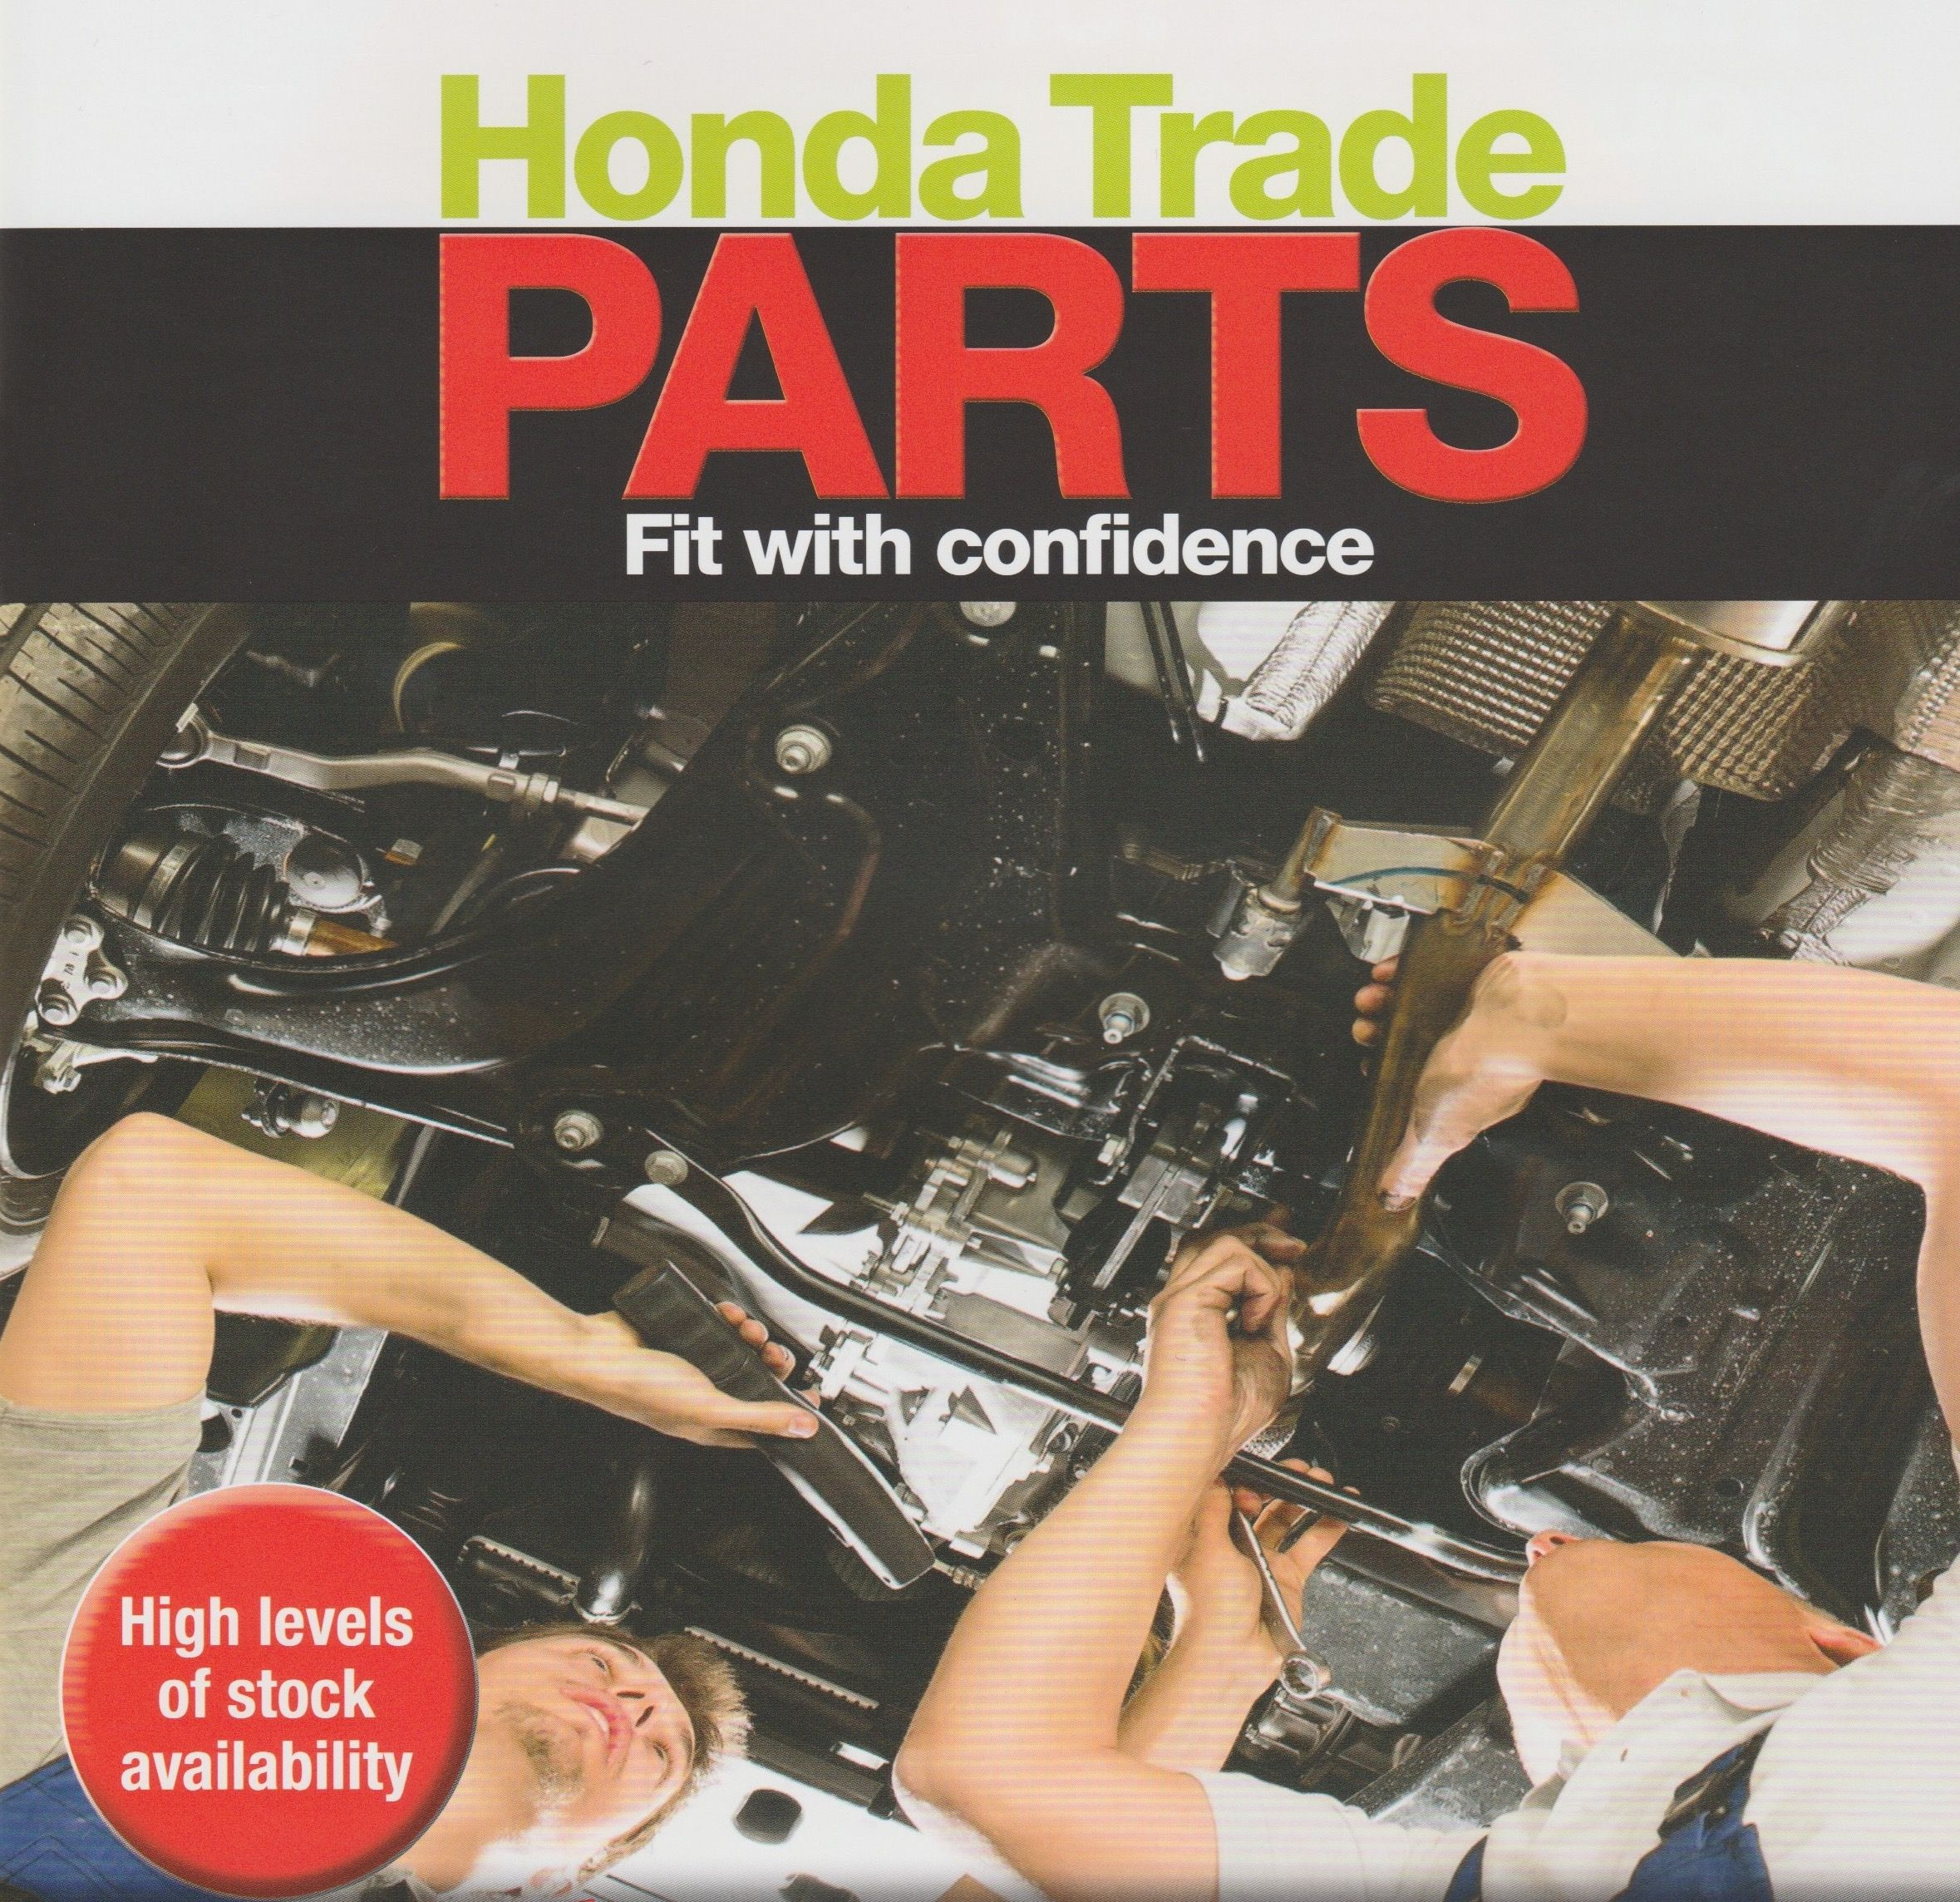 Home Crown Garage Honda 1997 Crv Parts Oem Are You An Imt Or Body Shop Needing A Service Can Rely On